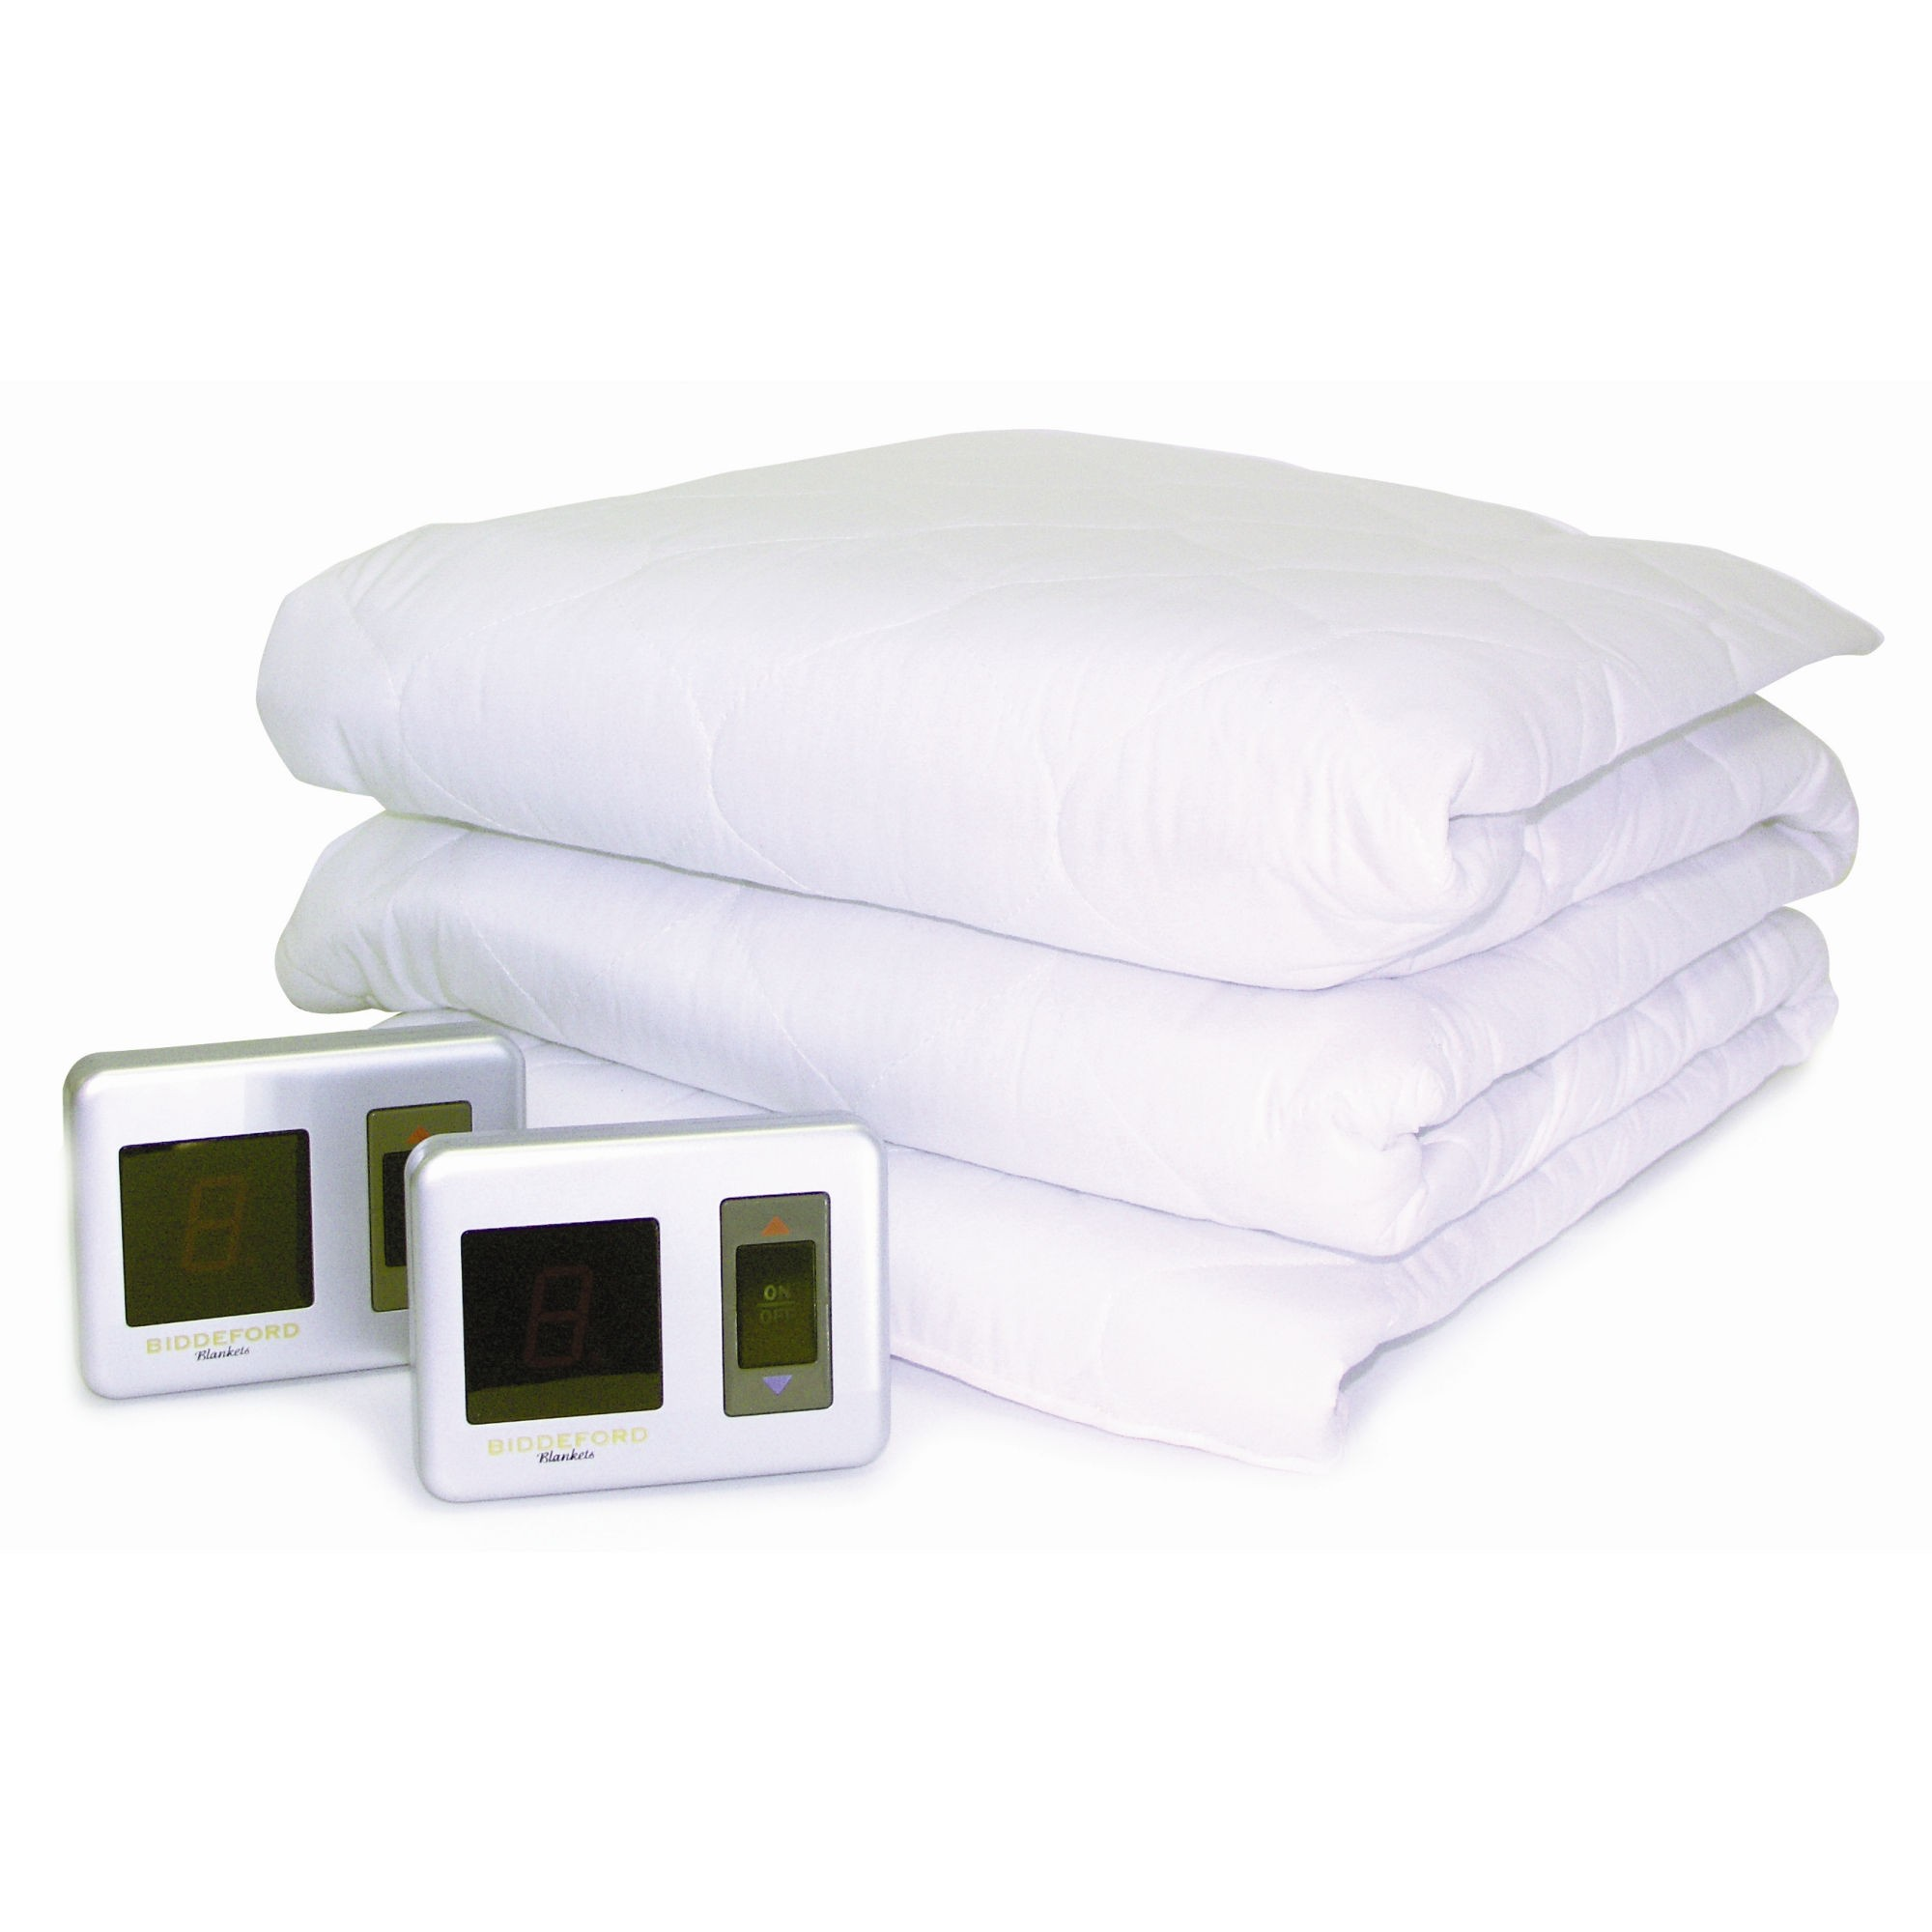 Biddeford Heated Blankets | Biddeford Electric Blanket | Biddeford Twin Electric Blanket